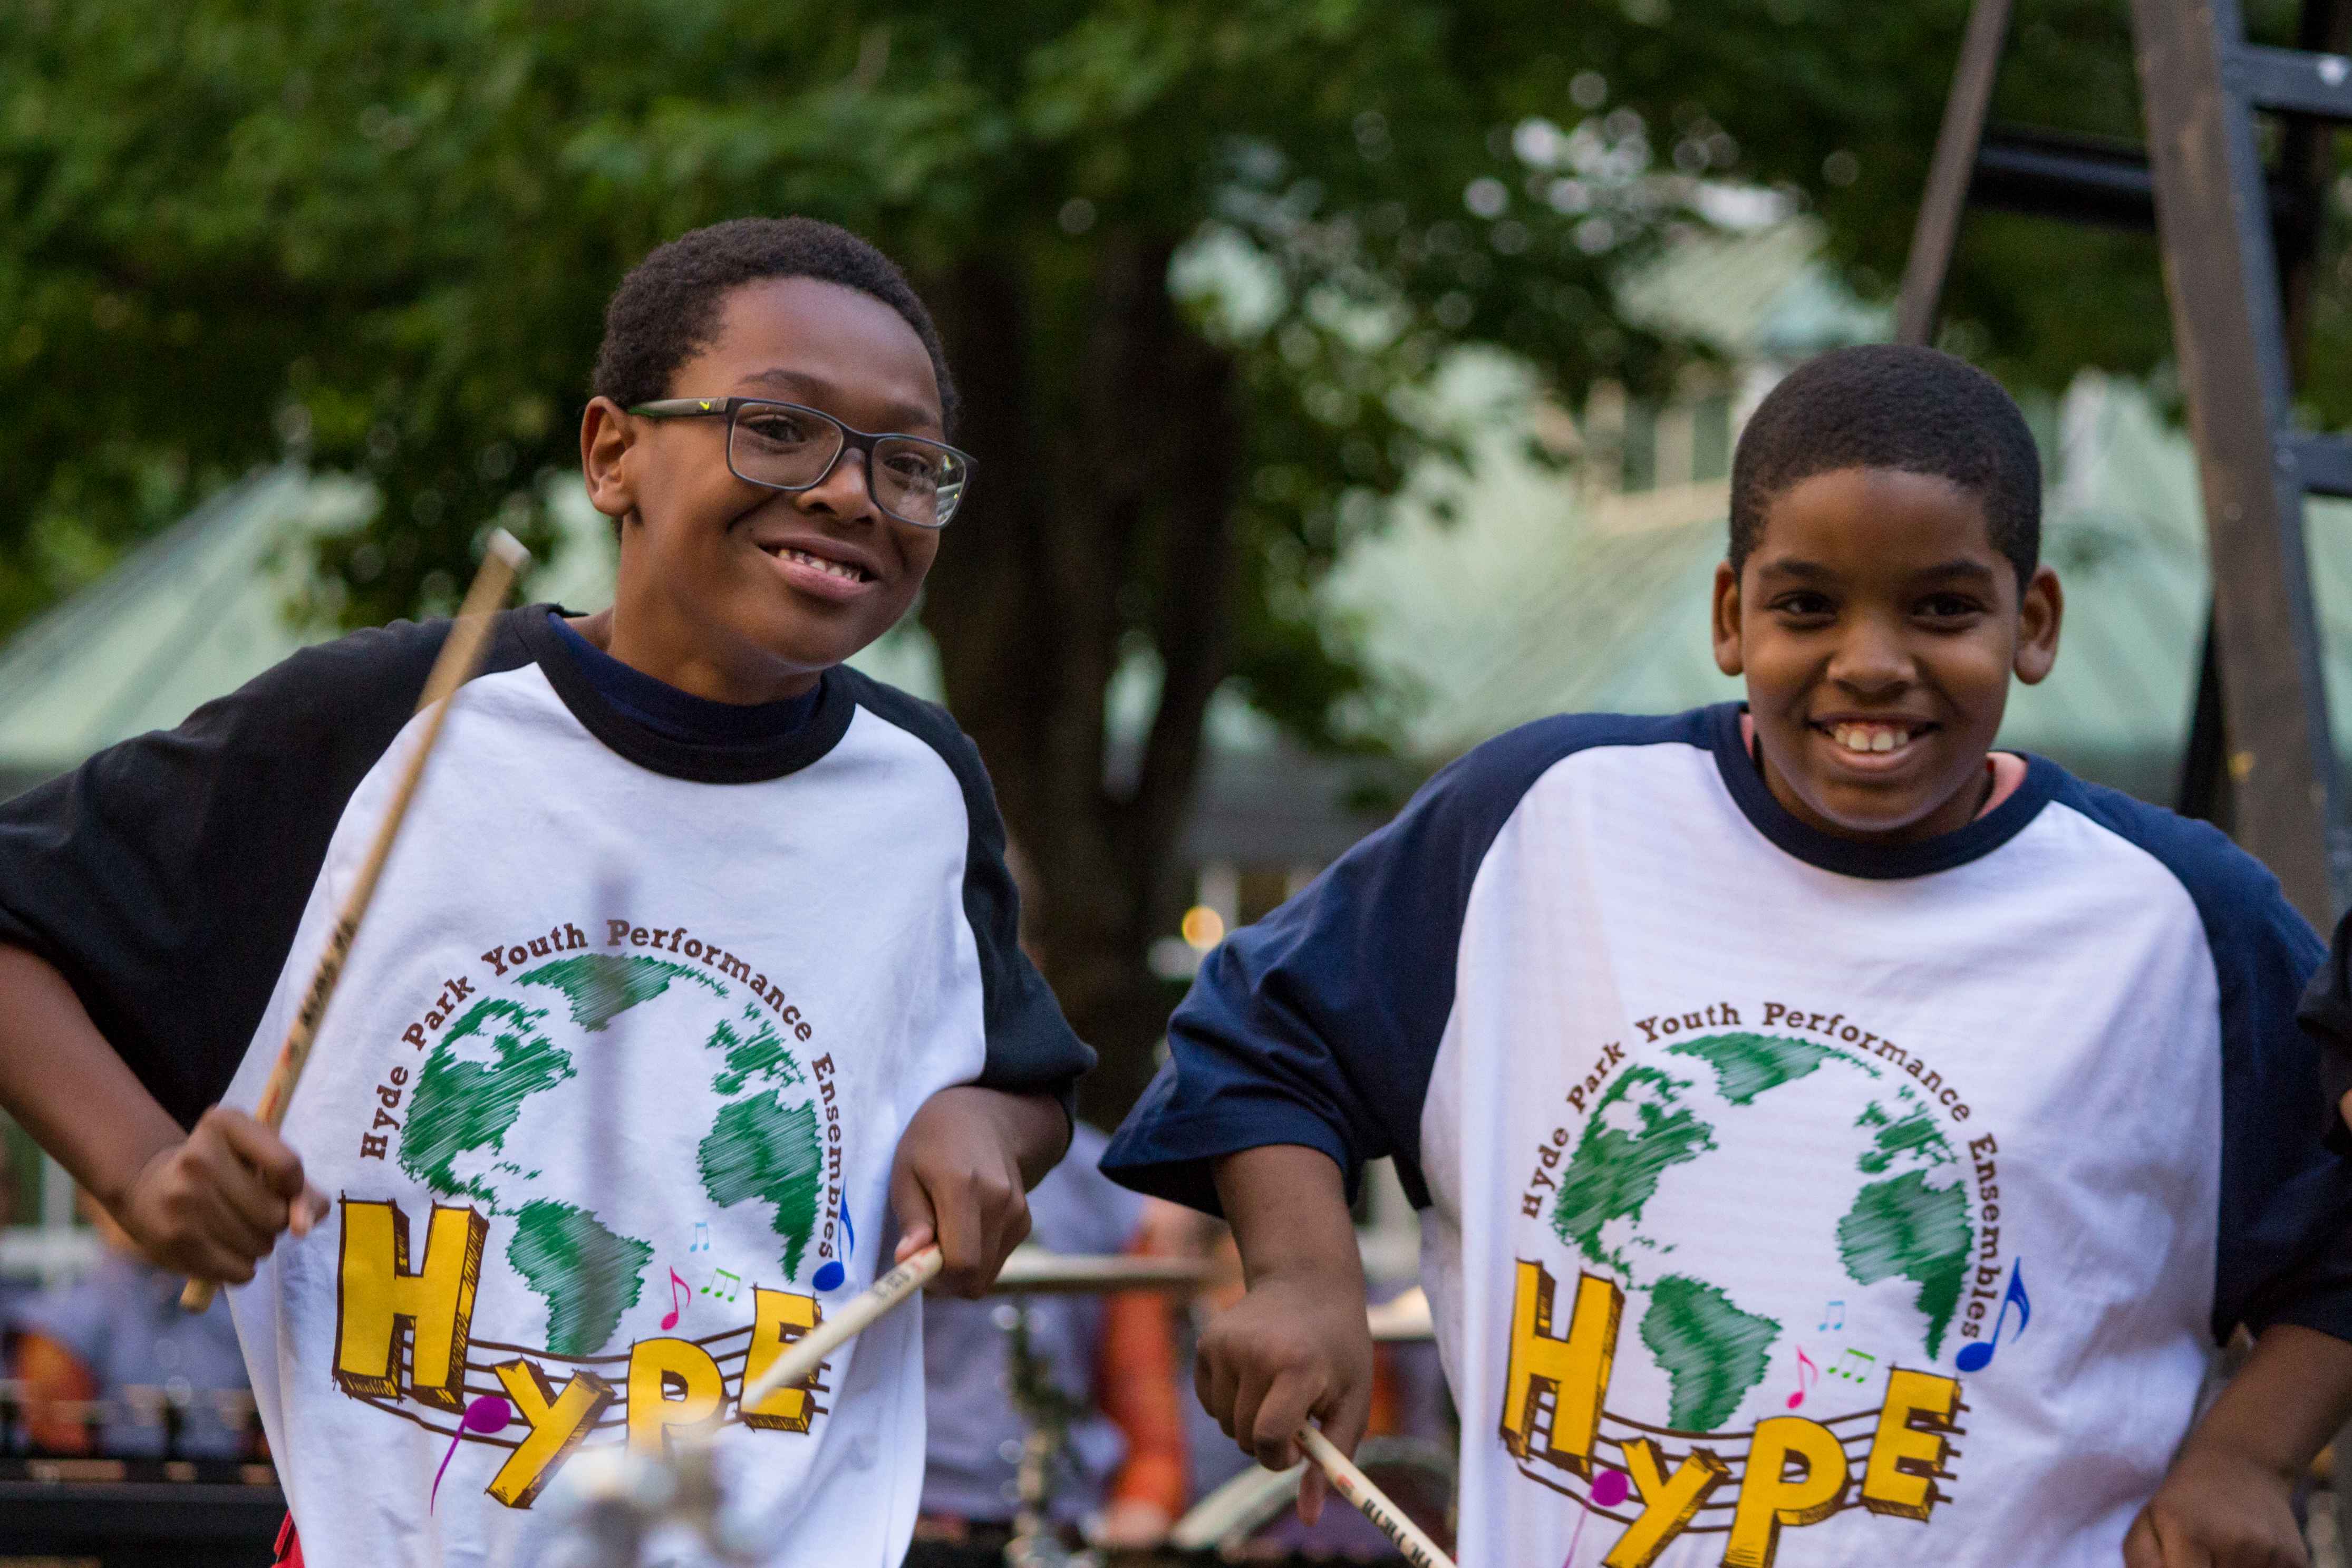 Hyde Park Youth Percussion Ensemble (HpYPE)